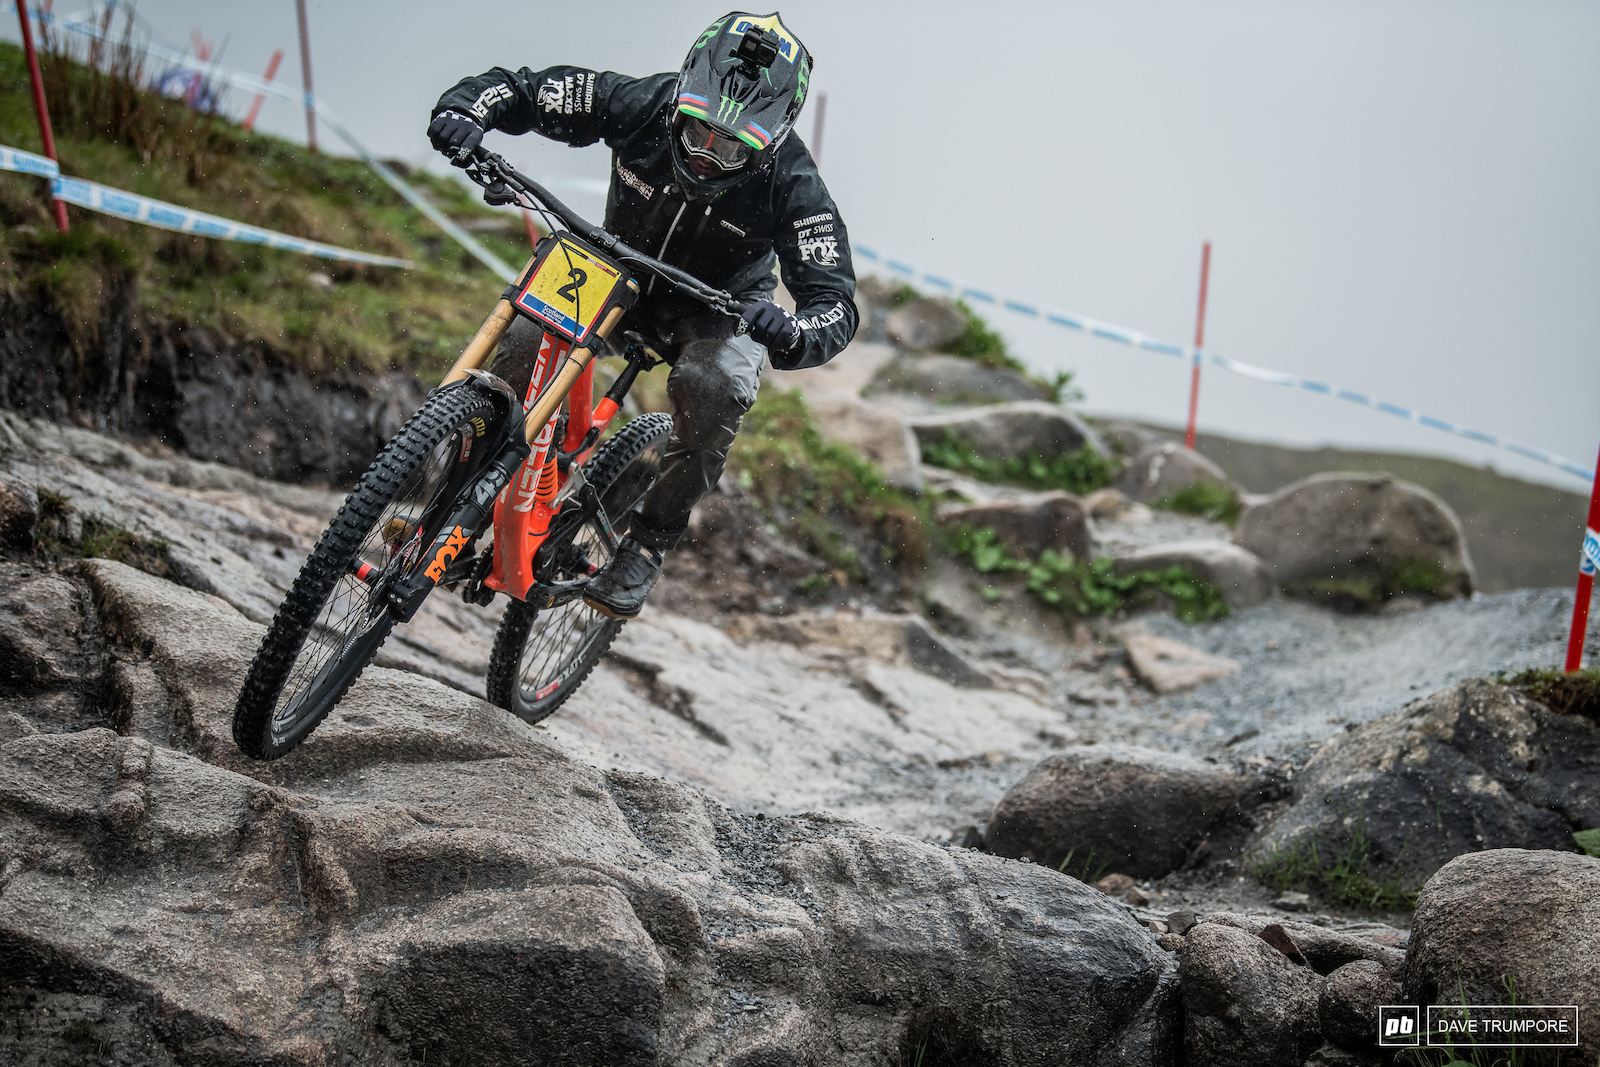 Danny Hart finding grip on the wet rocks